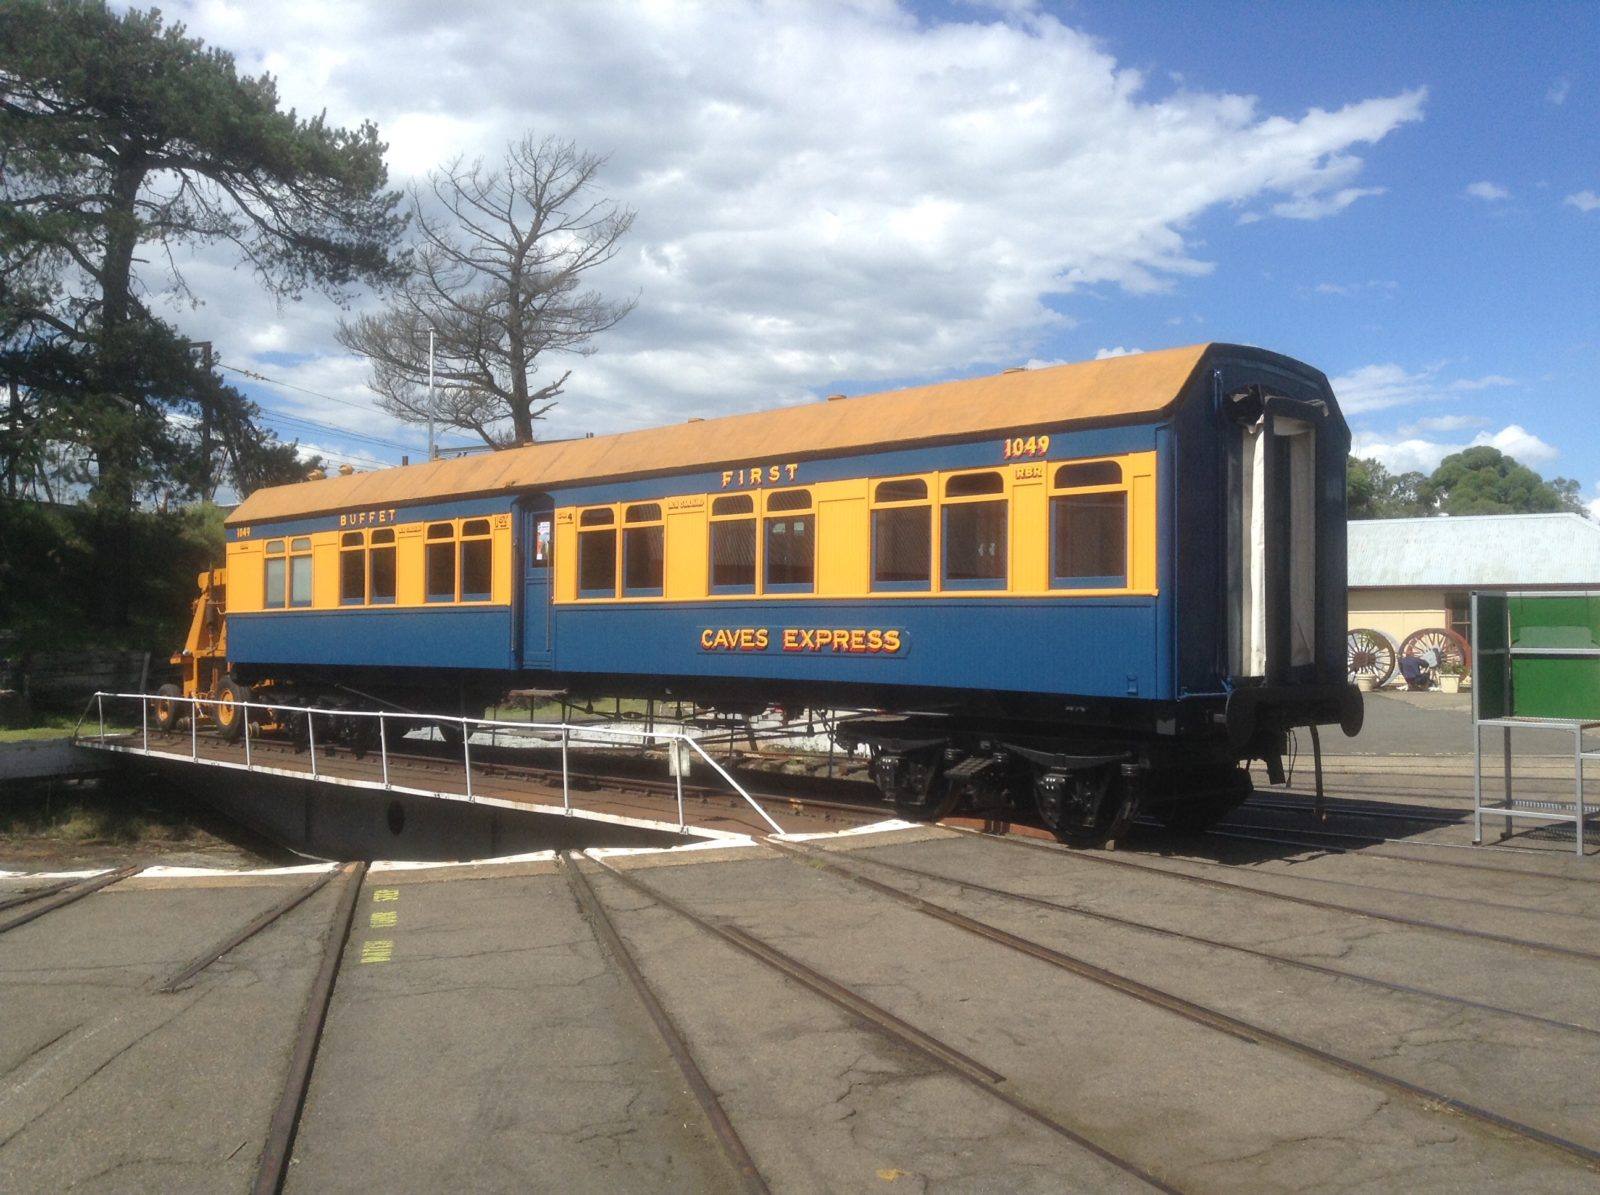 Caves Express carriage on turntable